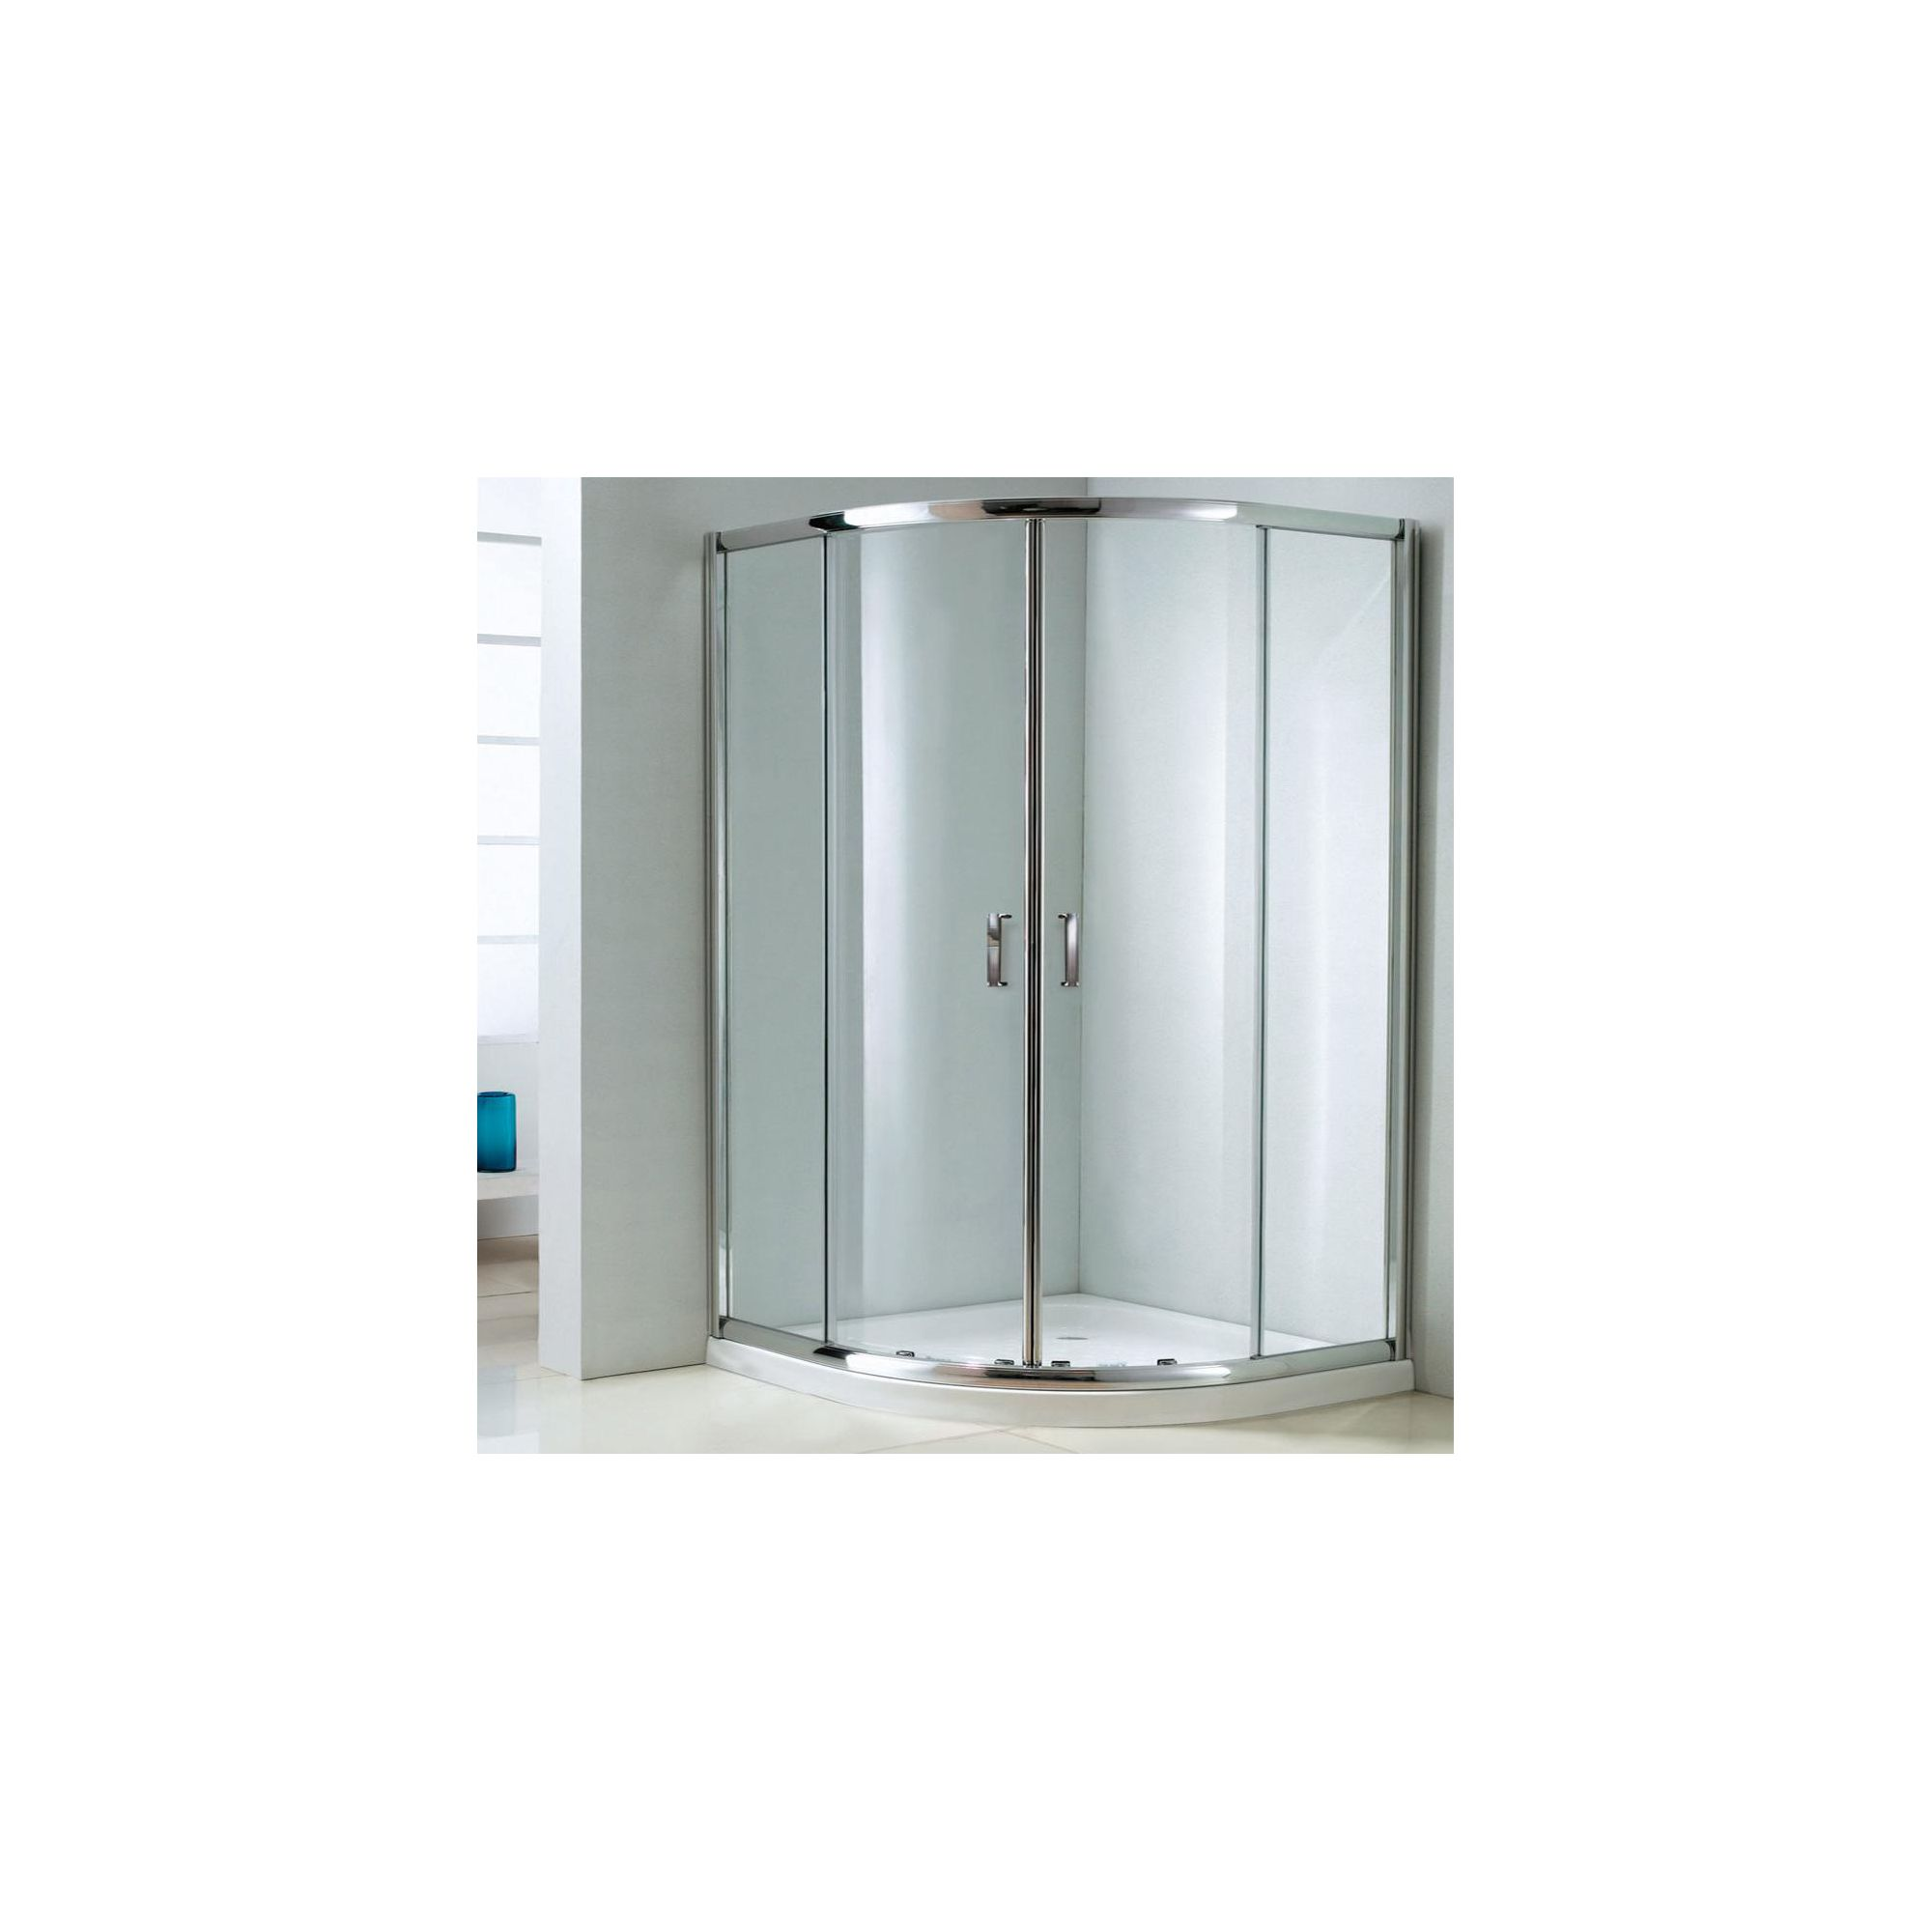 Duchy Style Double Offset Quadrant Door Shower Enclosure, 1000mm x 800mm, 6mm Glass, Low Profile Tray, Left Handed at Tesco Direct